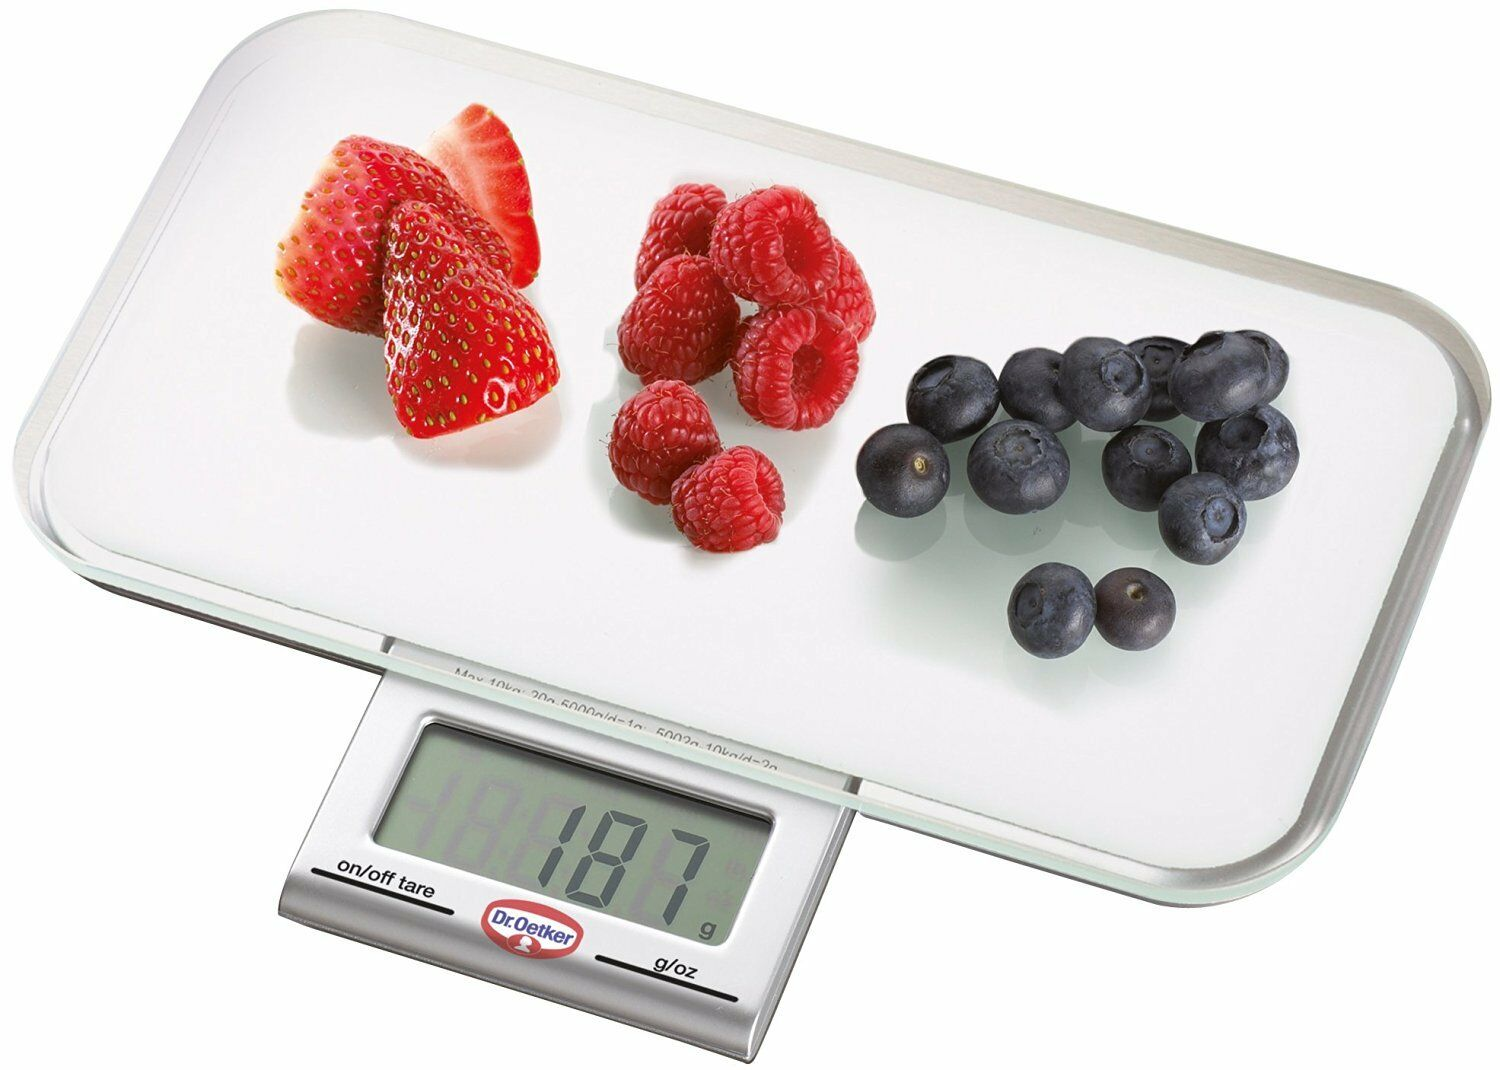 Dr. Oetker 1535 Digital Baking Scale with Pull Out Display